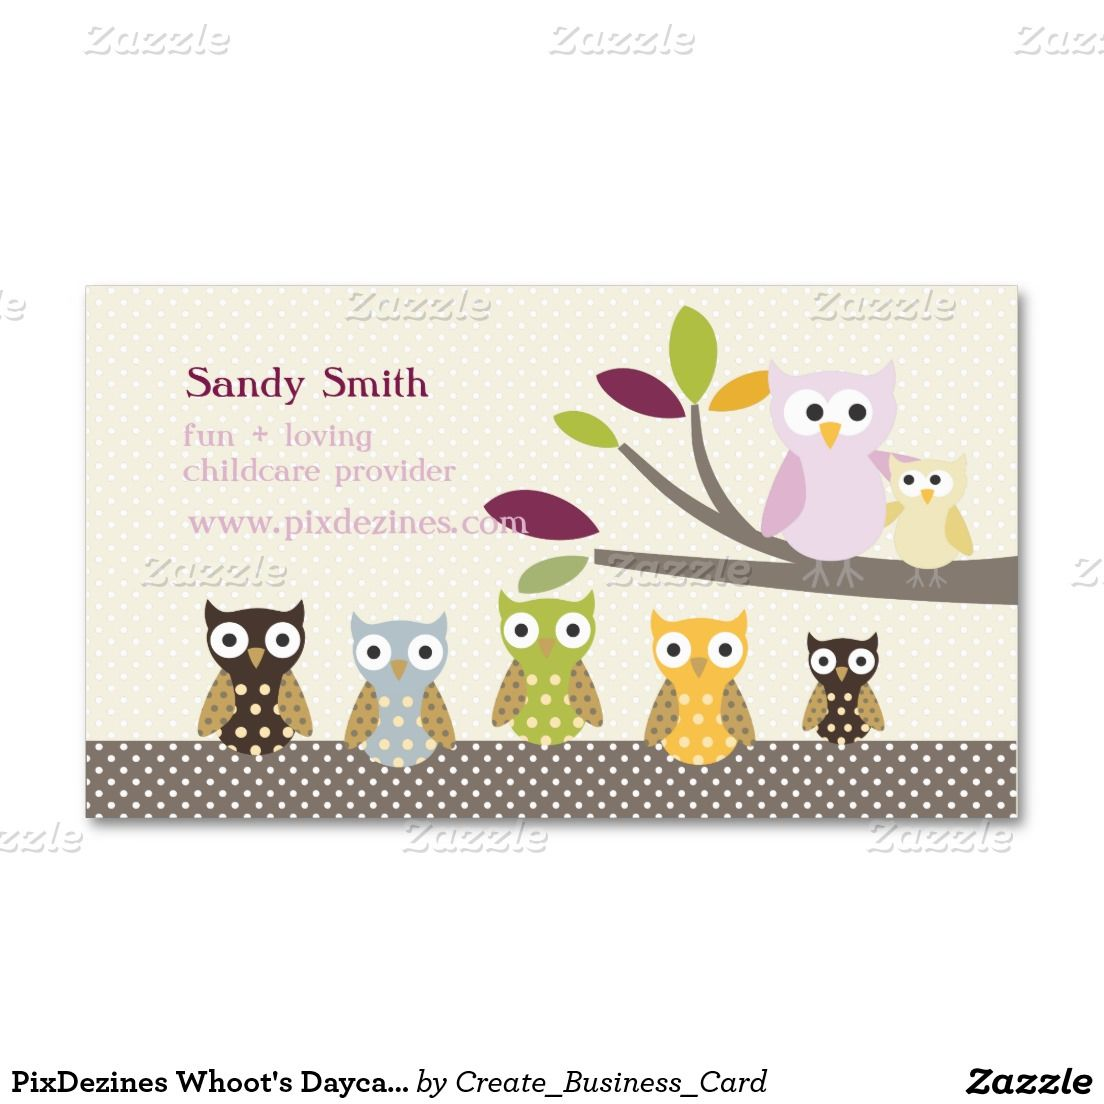 PixDezines Whoot\'s Daycare Business Card | Business, Daycares and Cards